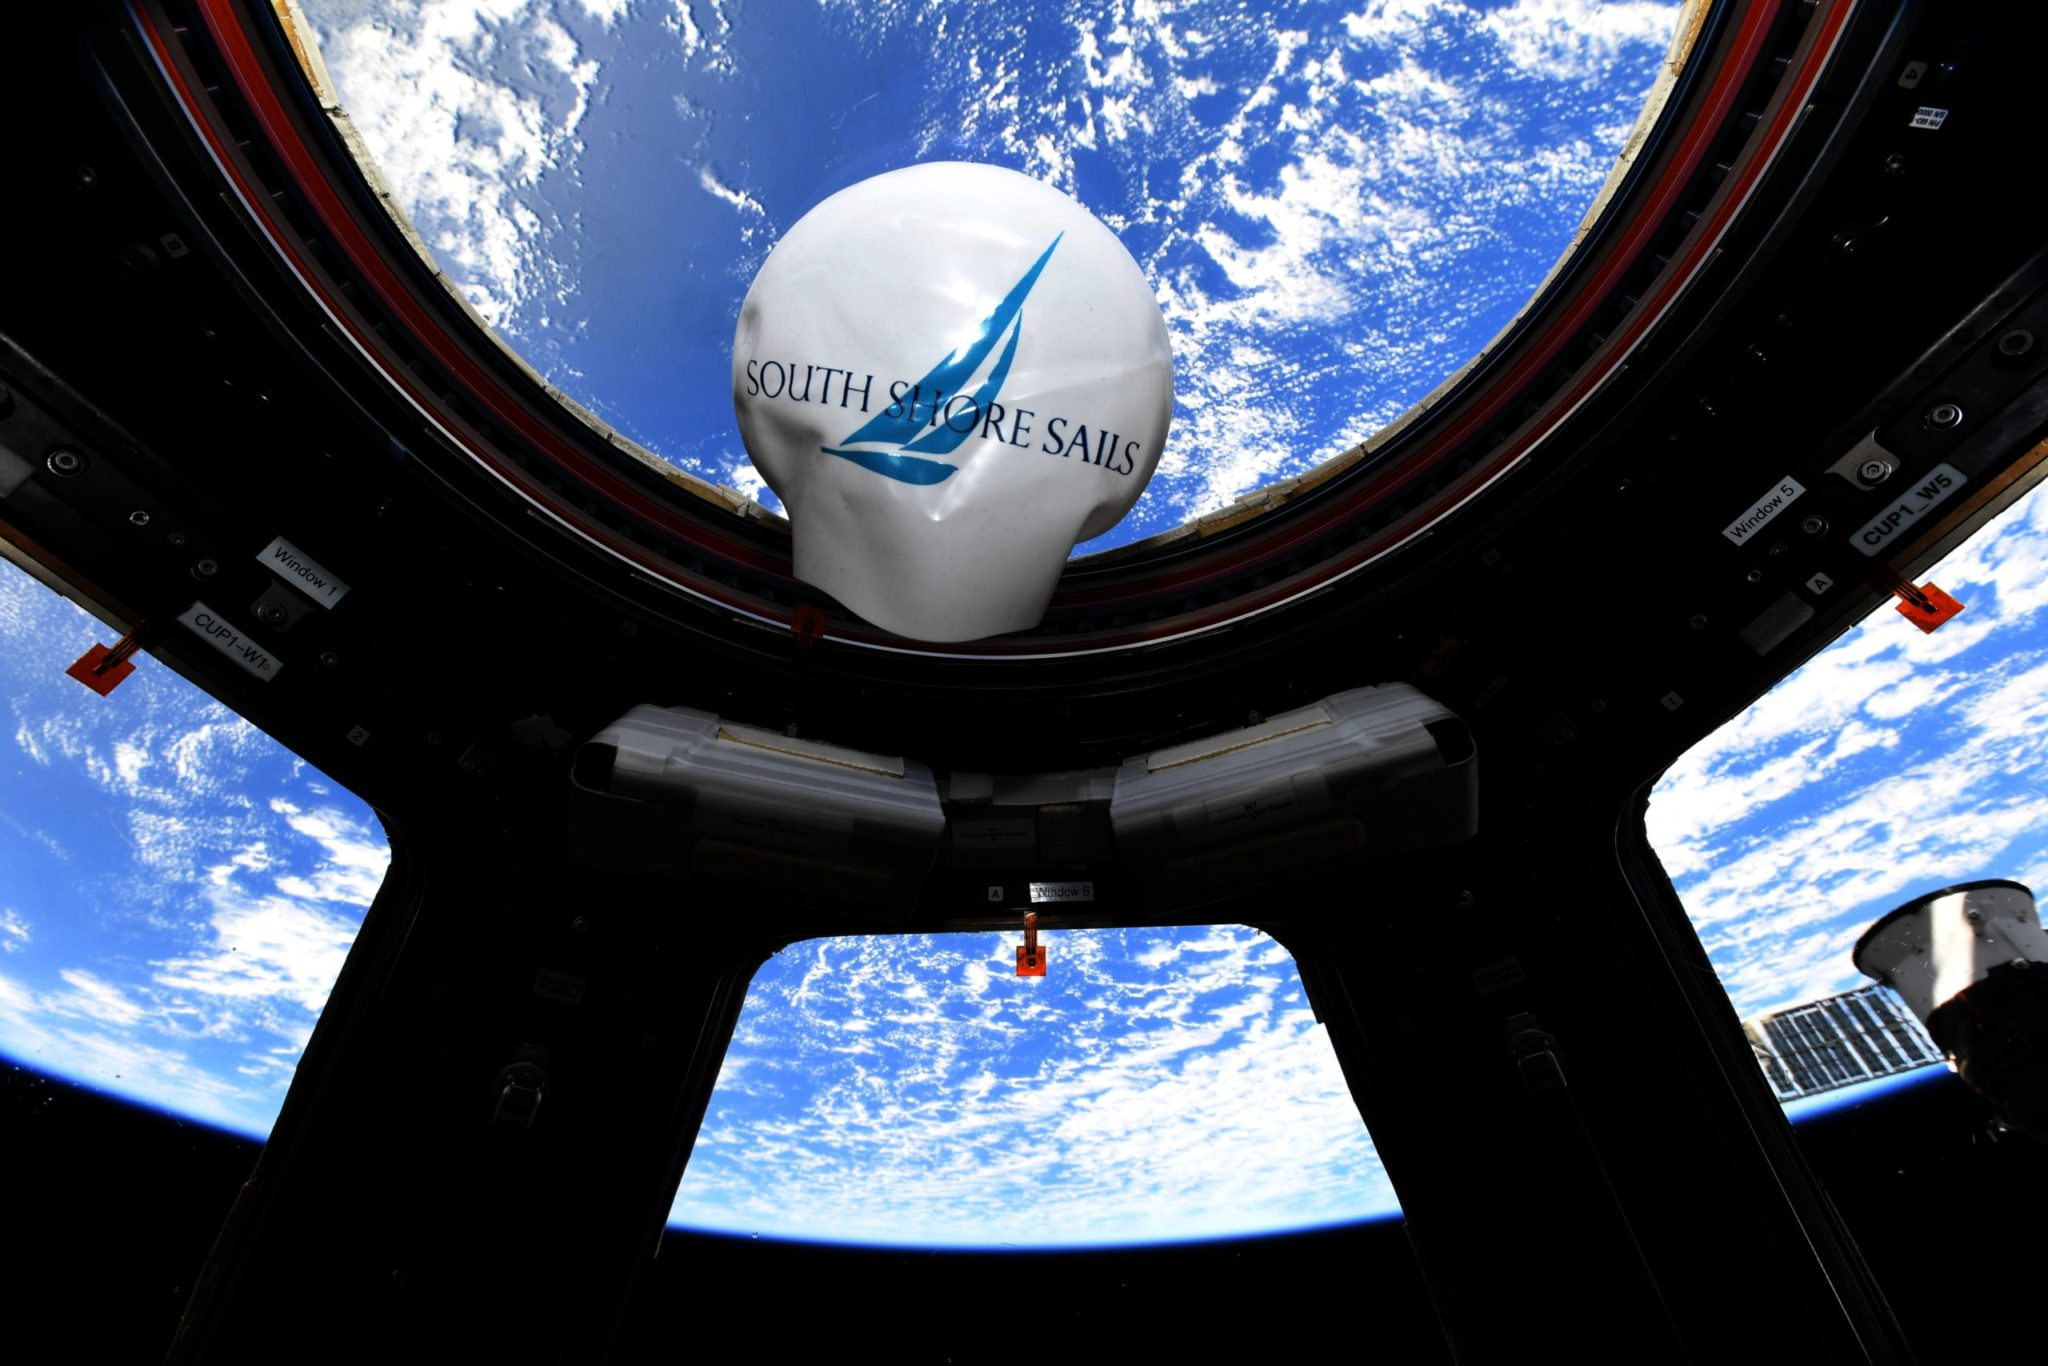 How Did a South Shore Sails Swim Cap Wind Up in Space?